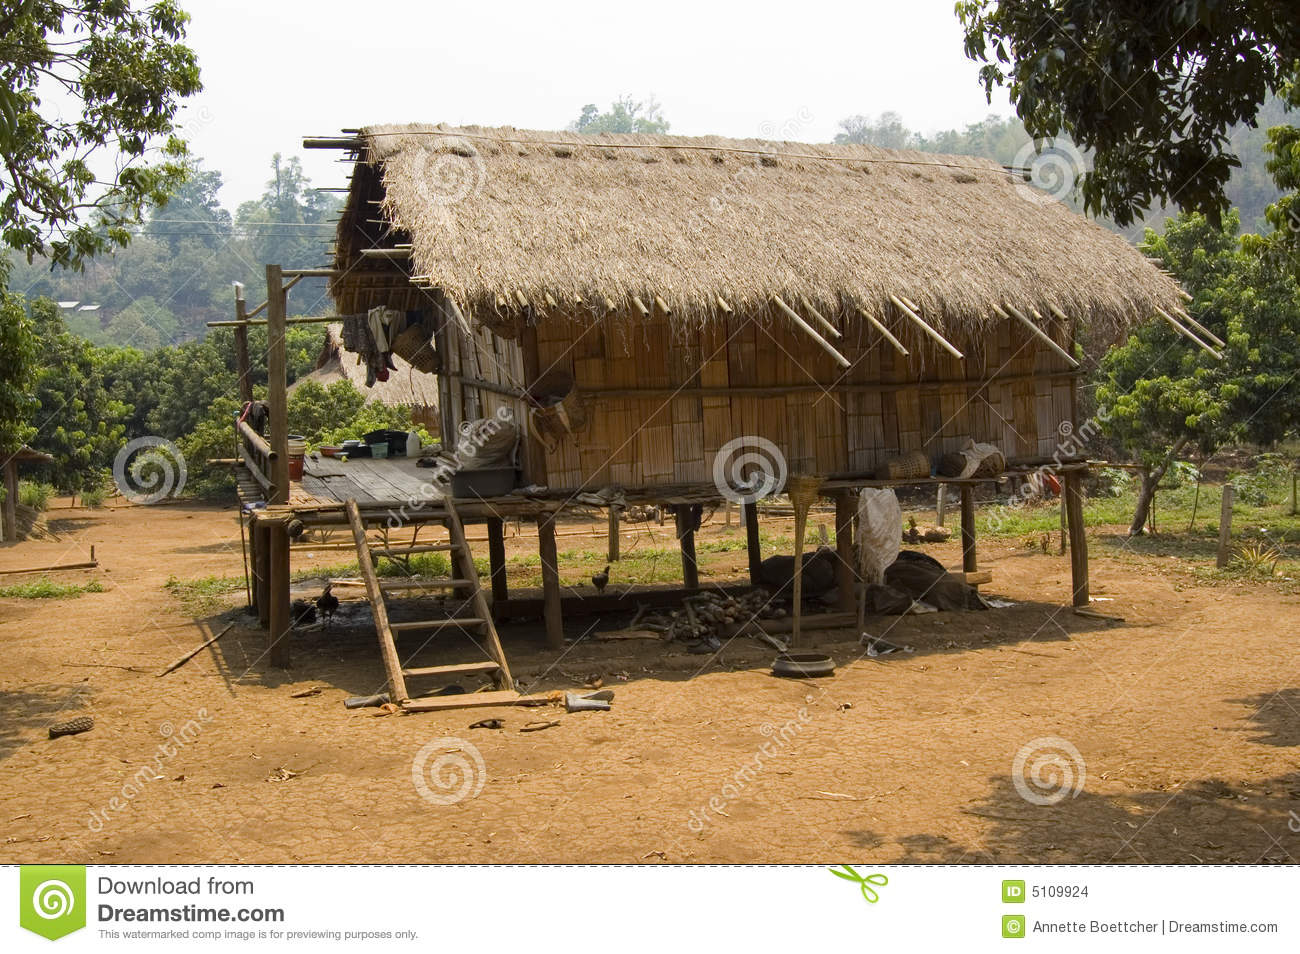 Bamboo hut in a hill tribe village in the mountains of thailand